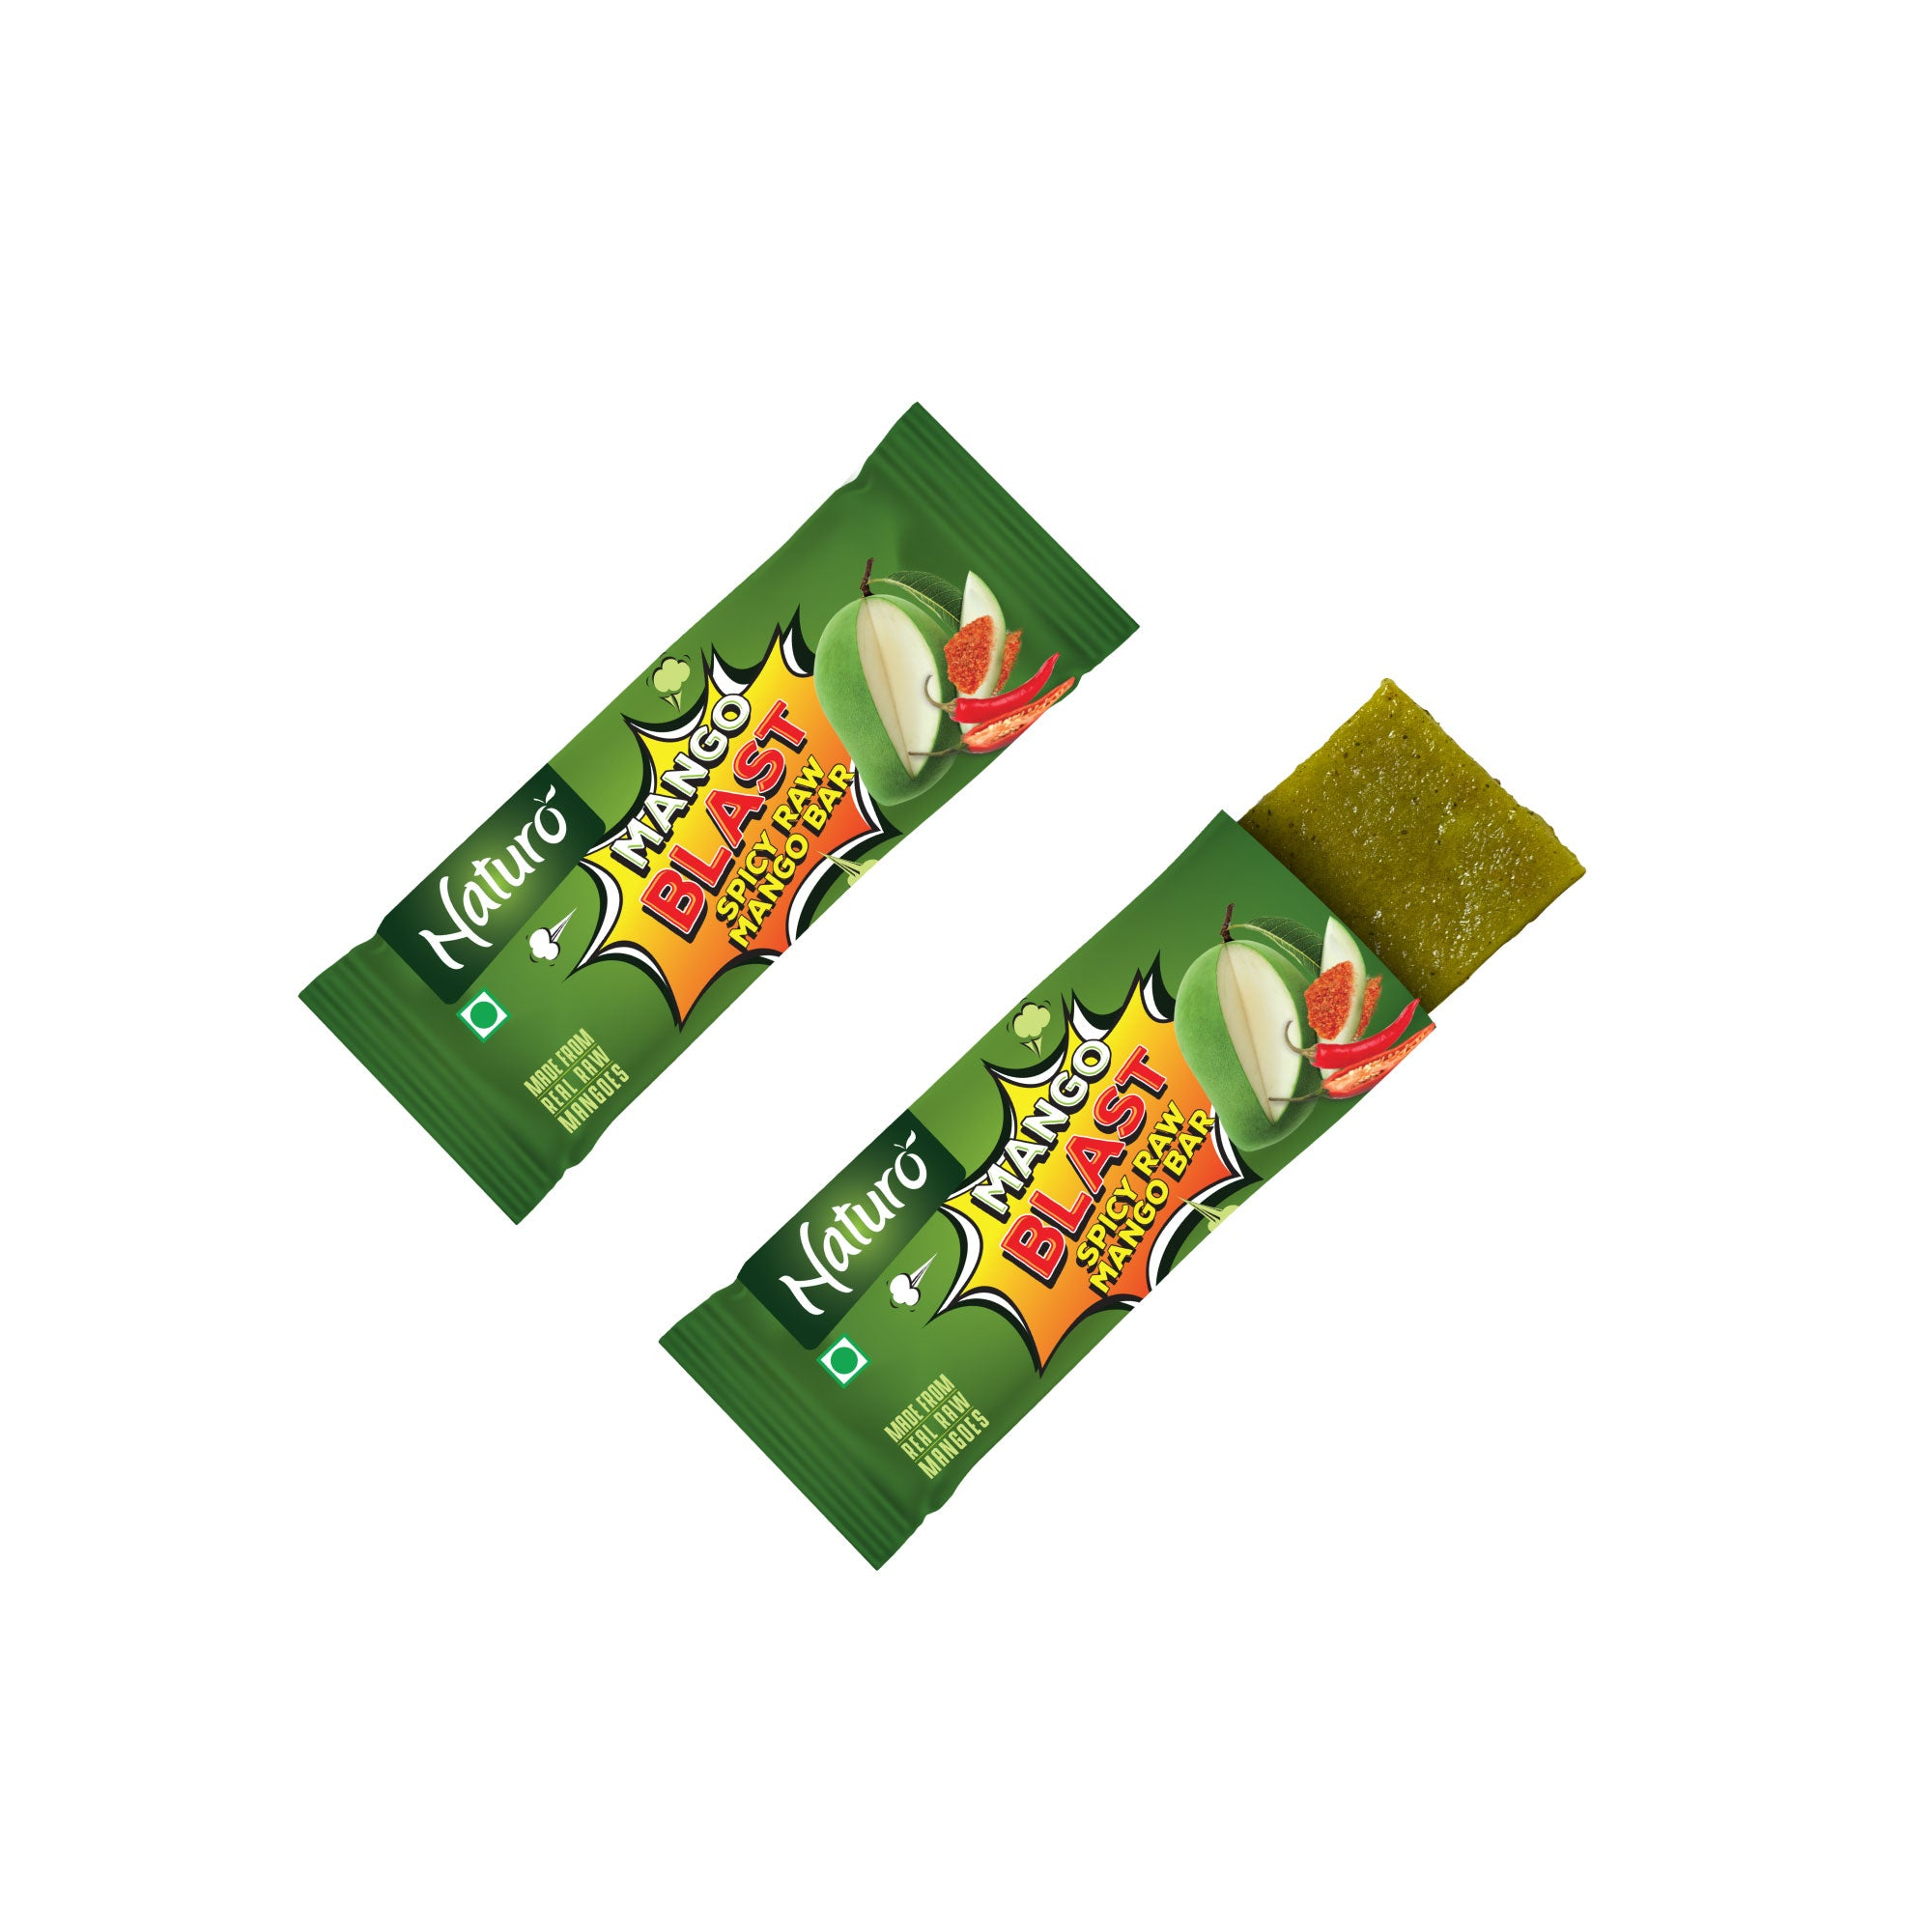 Naturo Spicy Raw Mango Bar -100gms